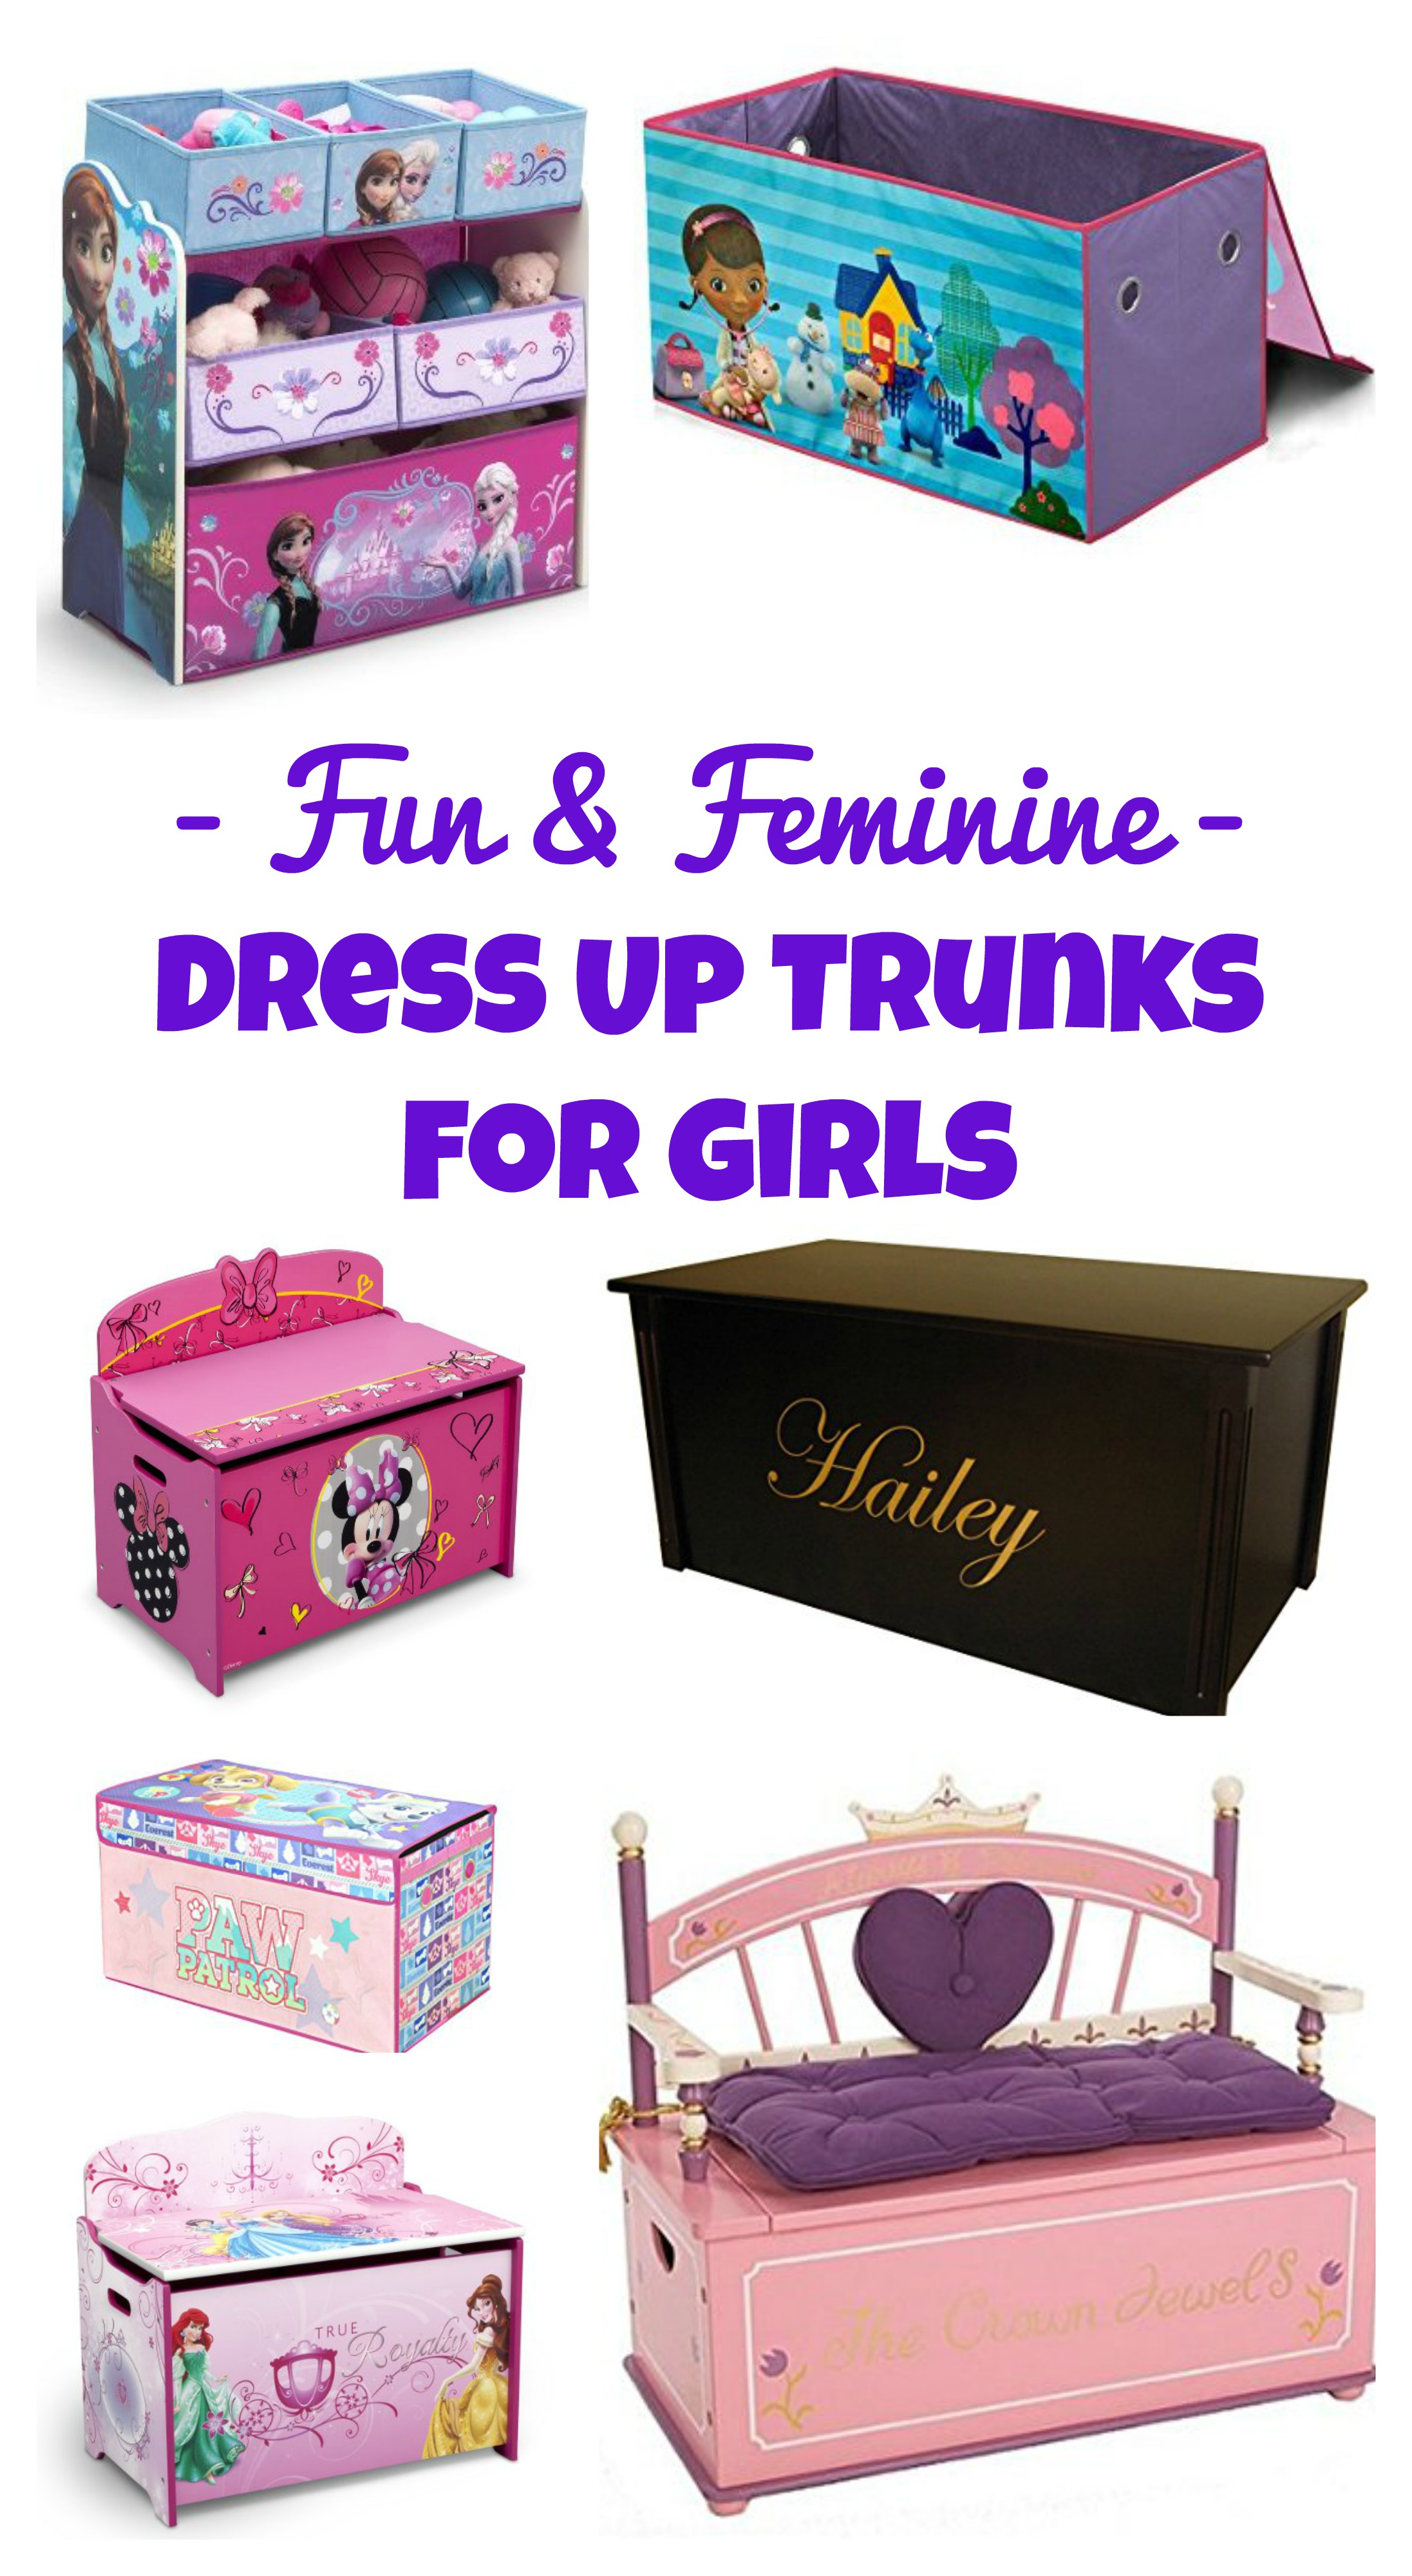 Awesome girls dress up clothes trunk ideas! Fun, feminine, easy to order and have a clean playroom soon! :) Check out www.kidslovedressup.com.